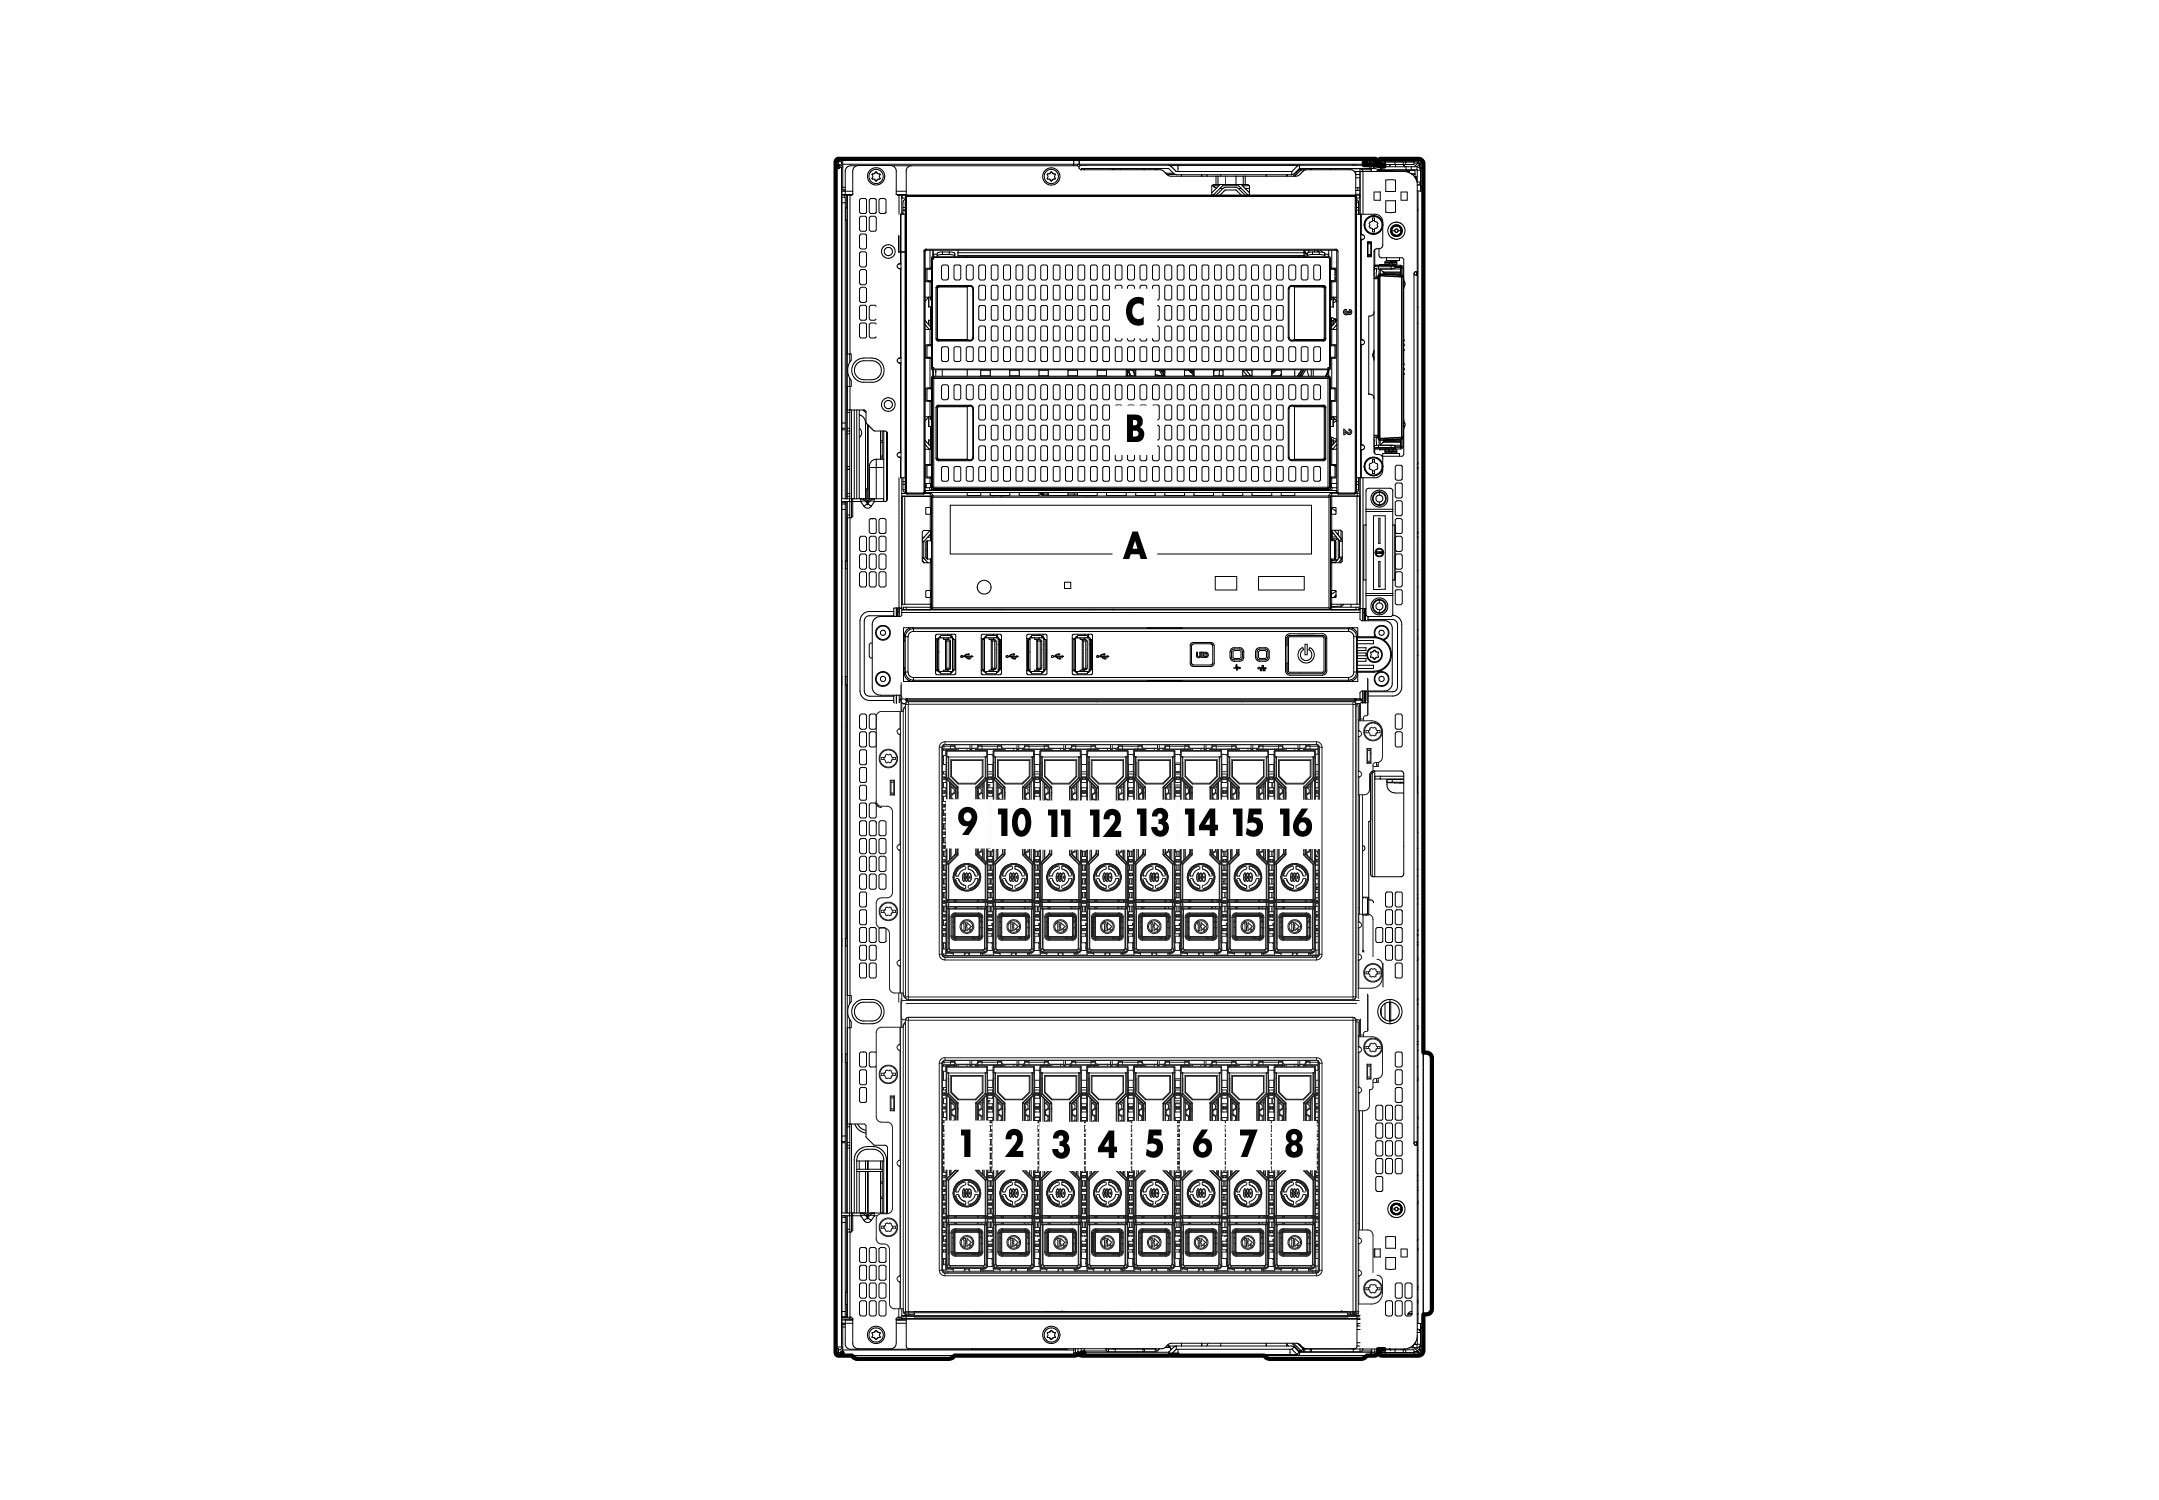 Hp proliant dl360 g5 smartstart cd download.